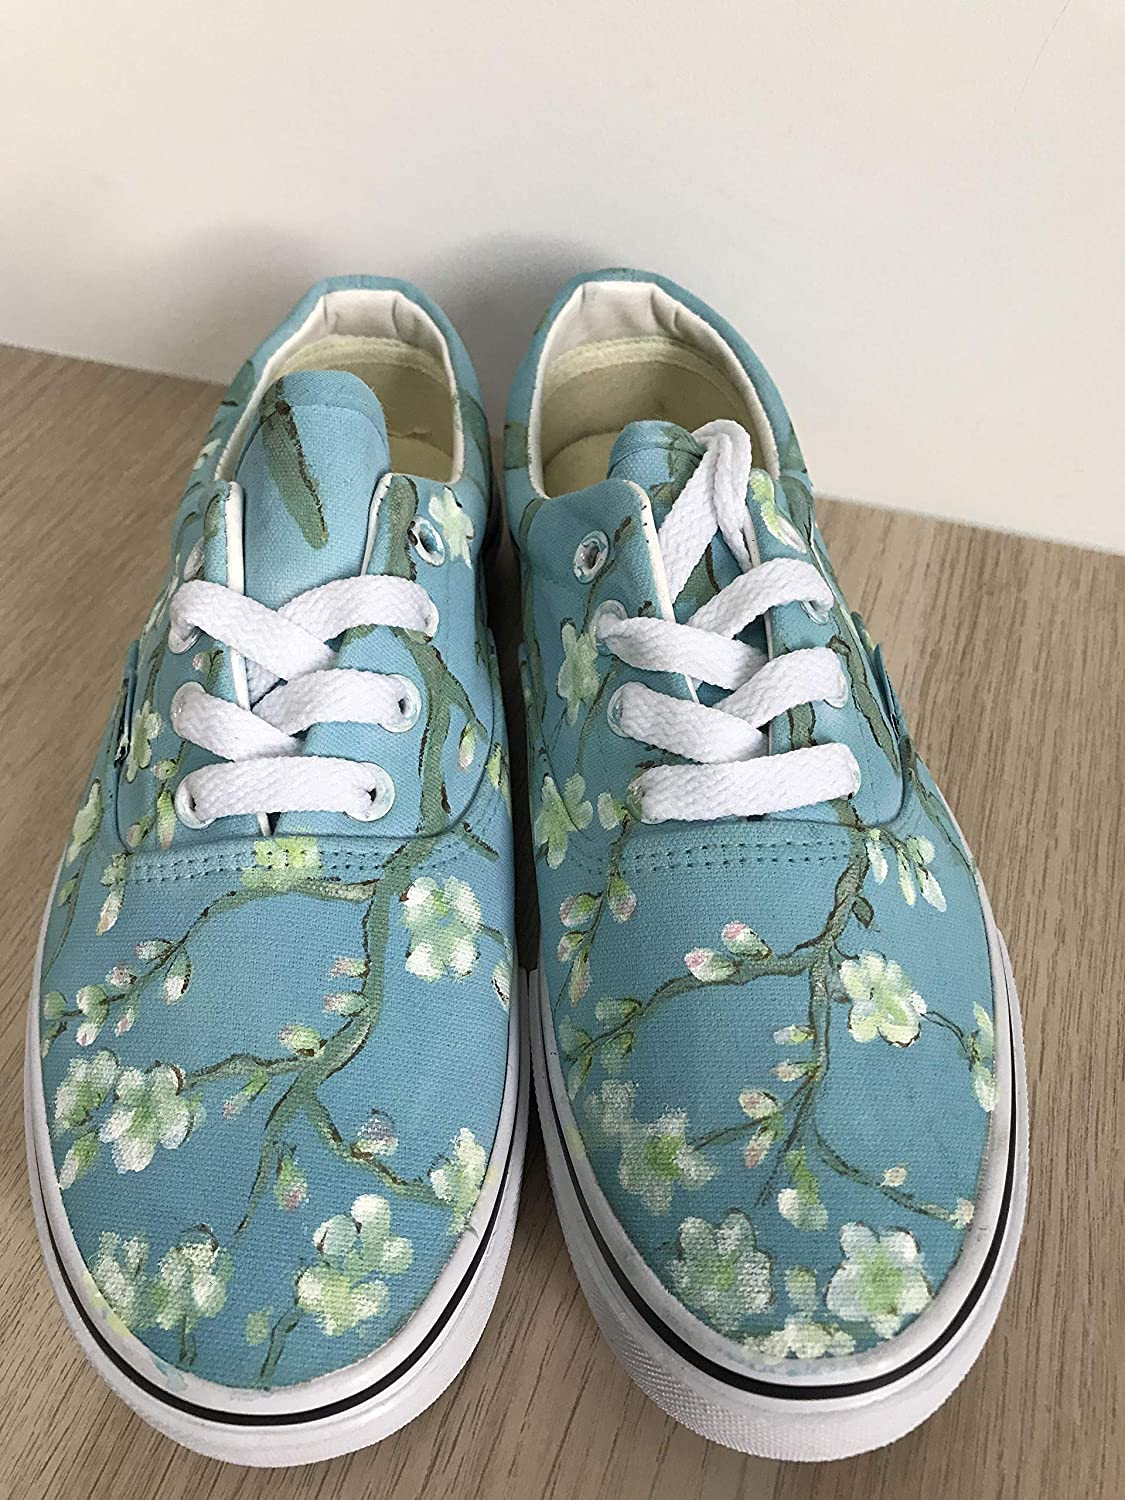 7717f6a57b Vans Vincent Van Gogh Blossoming Almond Tree Vans Authentic Custom Shoes  Vans Authentic Custom Hand Painted Shoes Hand Painted Vans Authentic Custom  Vans ...